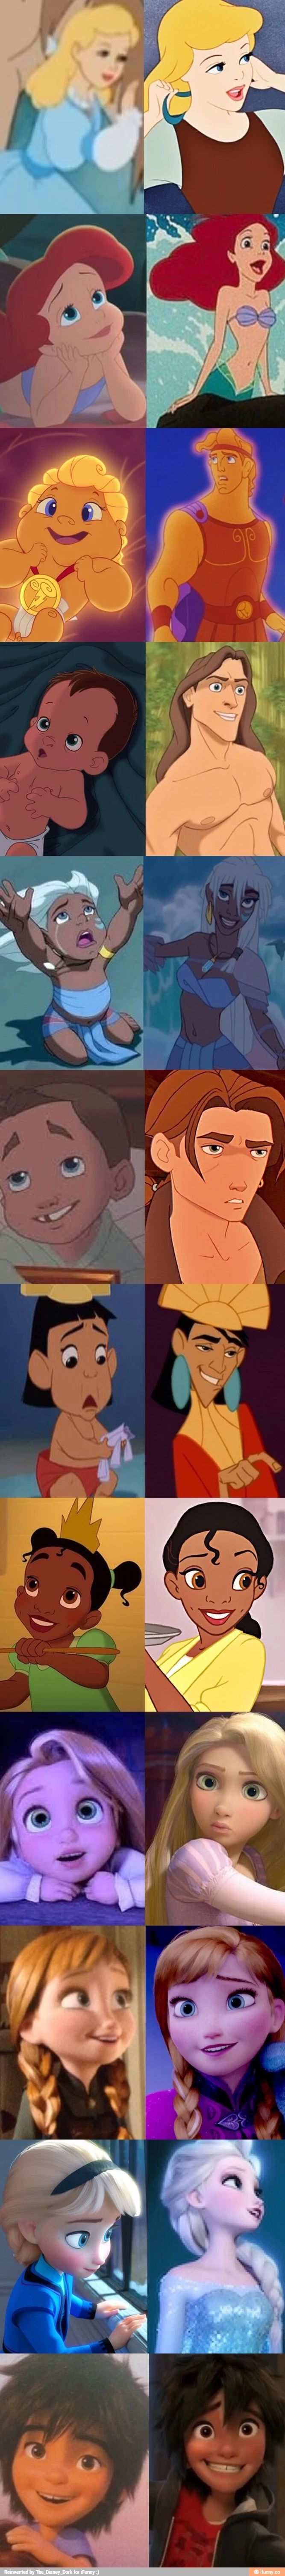 Disney characters as Adults and Kids